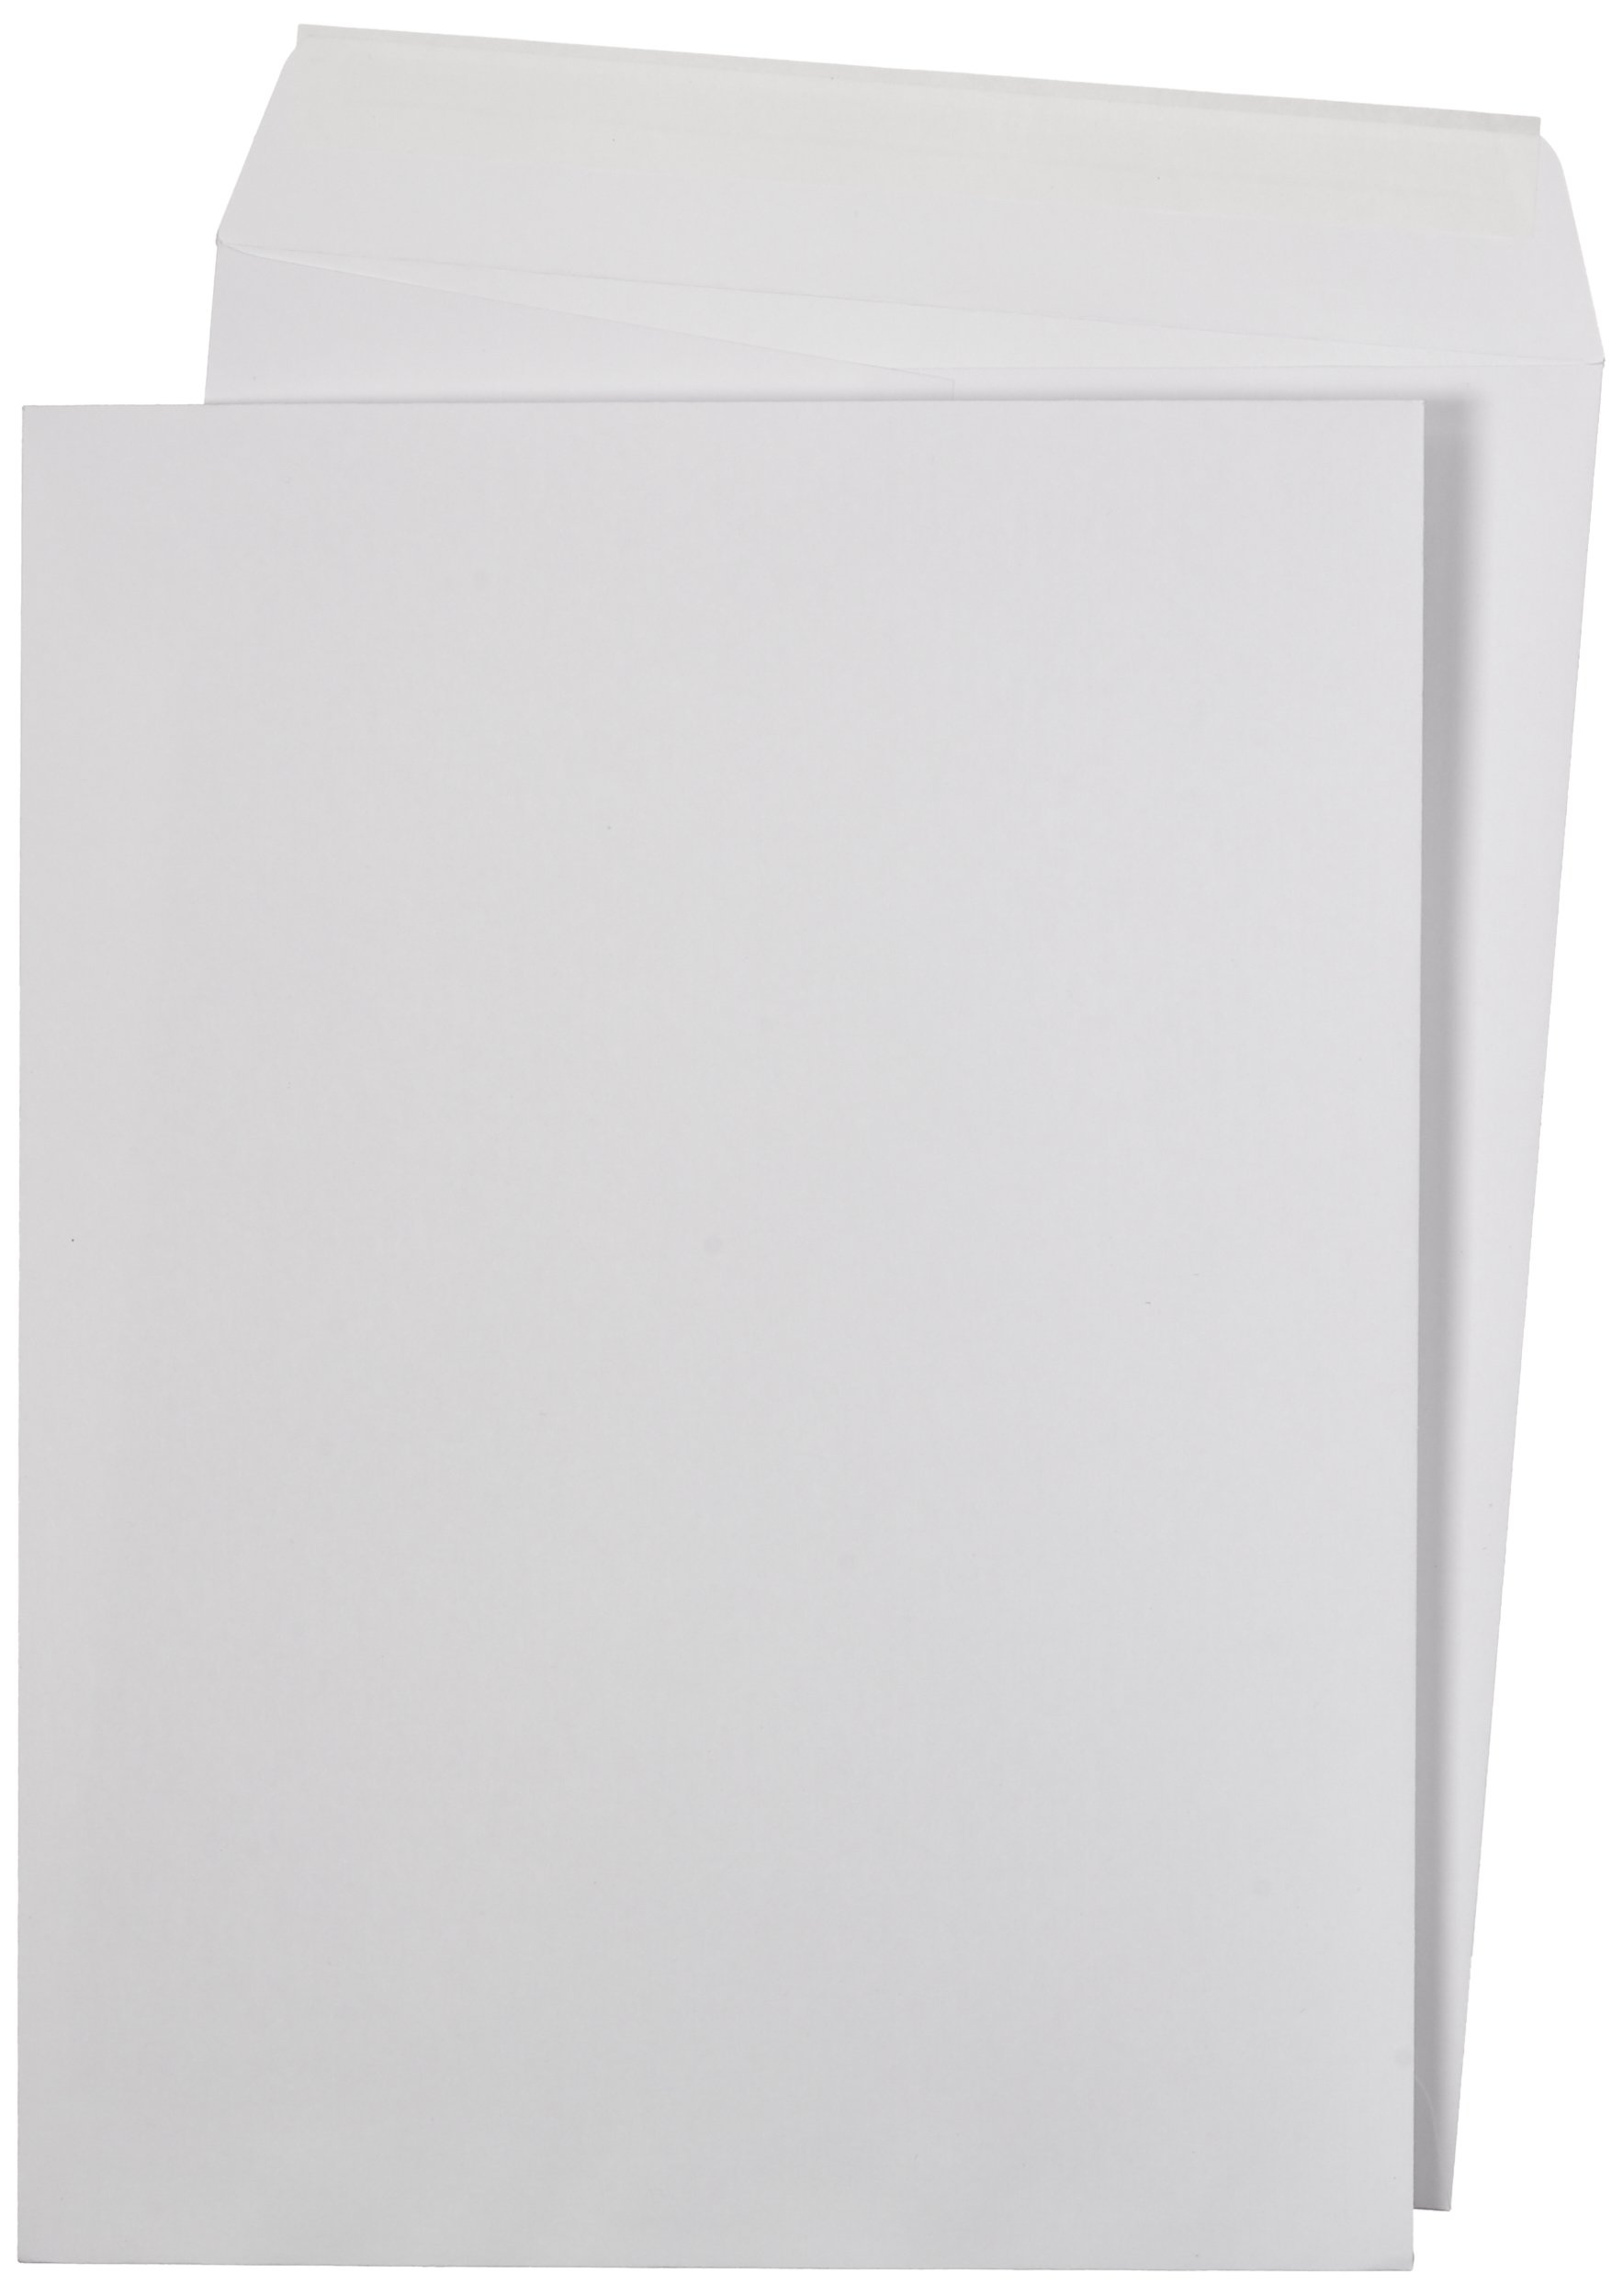 AmazonBasics Catalog Mailing Envelopes, Peel & Seal, 9x12 Inch, White, 250-Pack - AMZA33 by AmazonBasics